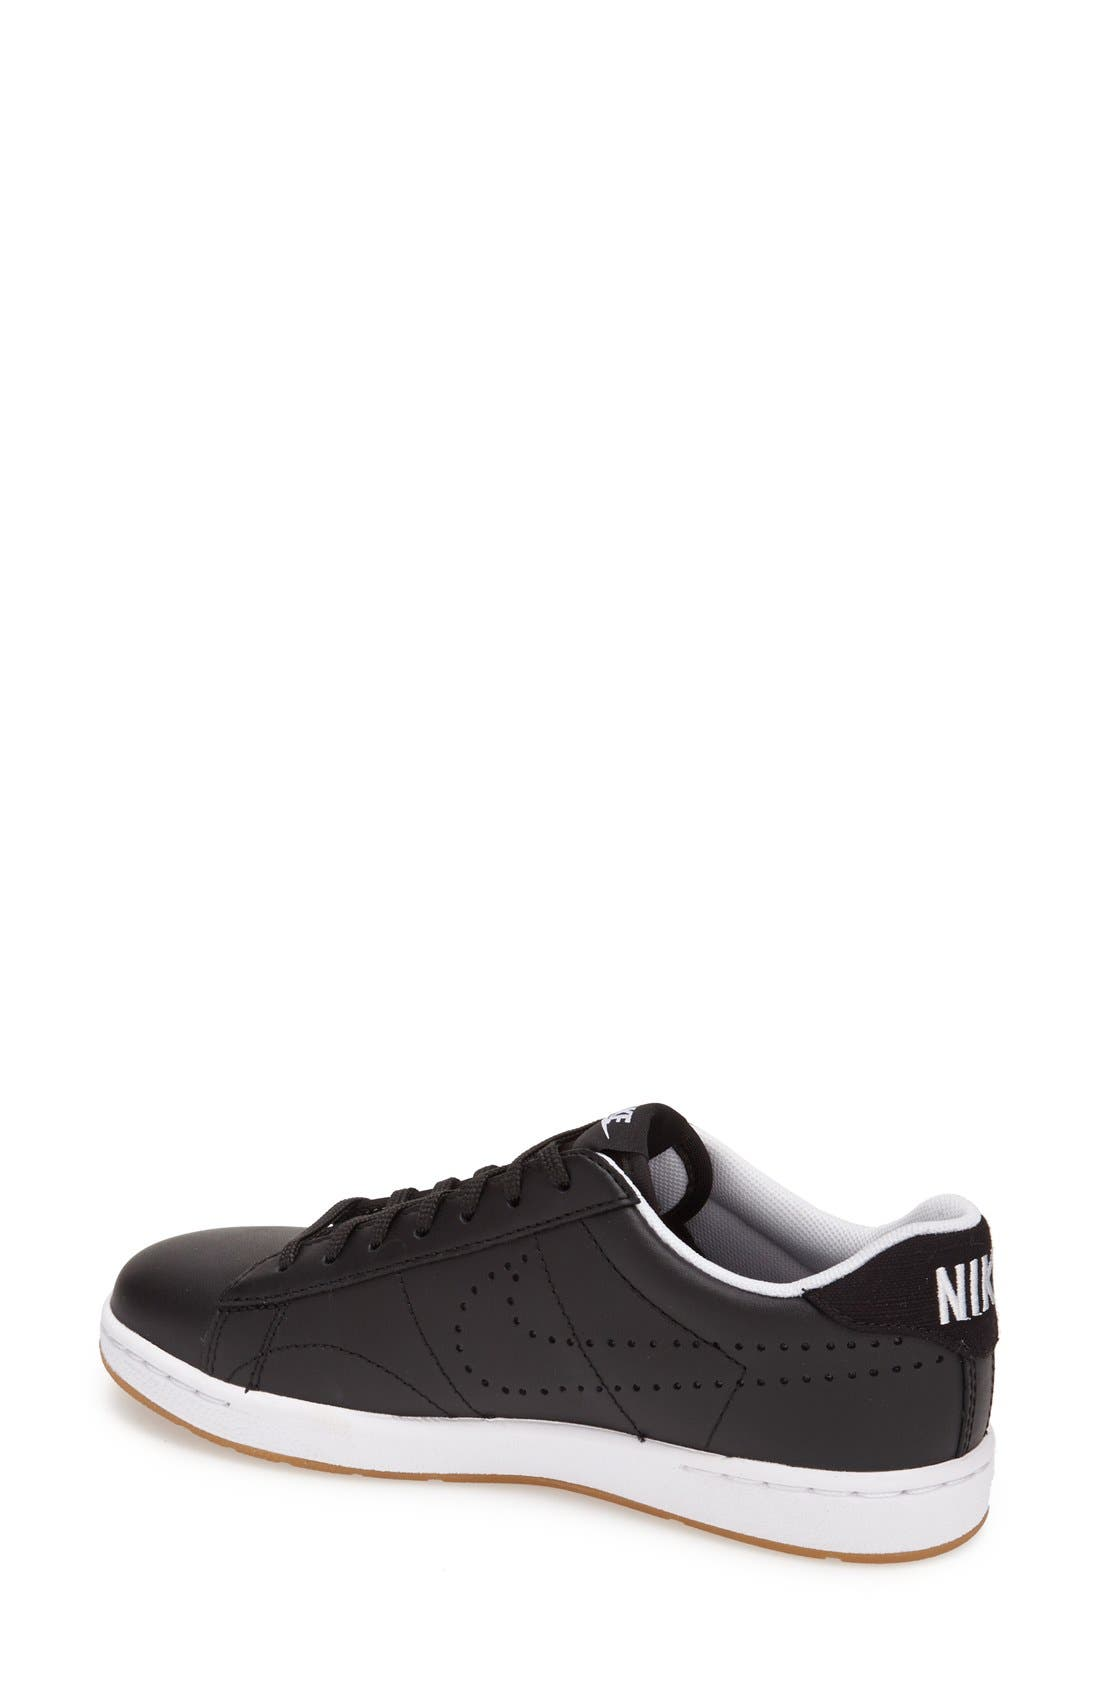 'Classic Ultra' Leather Sneaker,                             Alternate thumbnail 2, color,                             001